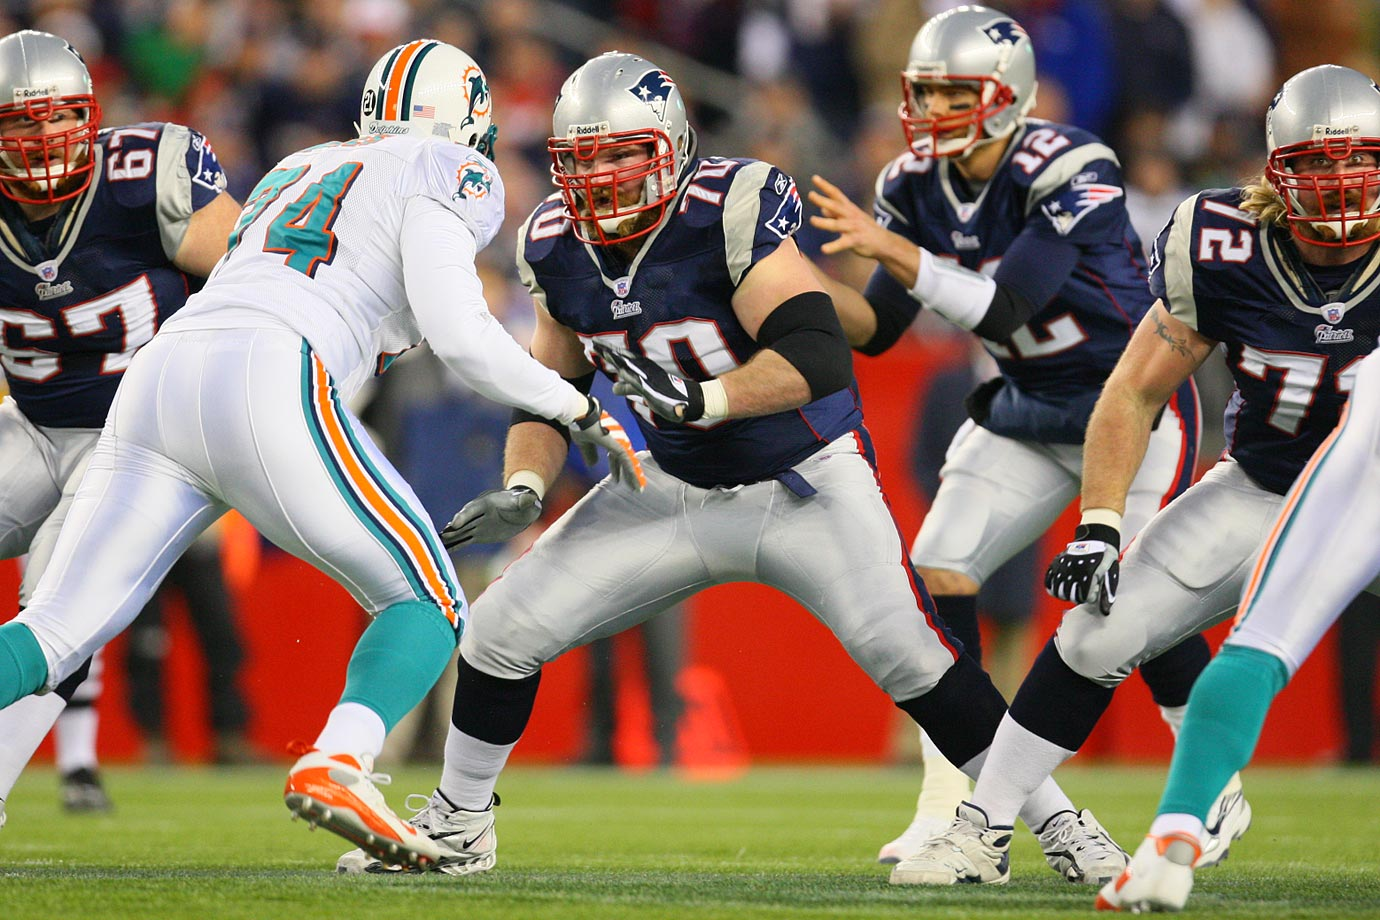 Guard Logan Mankins decided to retire after 11 seasons in the NFL. Mankins, 34, played nine years with the New England Patriots, where he made six Pro Bowl teams and played in two Super Bowls. He was traded to Tampa Bay ahead of the 2014 season and started 33 games in the last two seasons before making this year's Pro Bowl team.